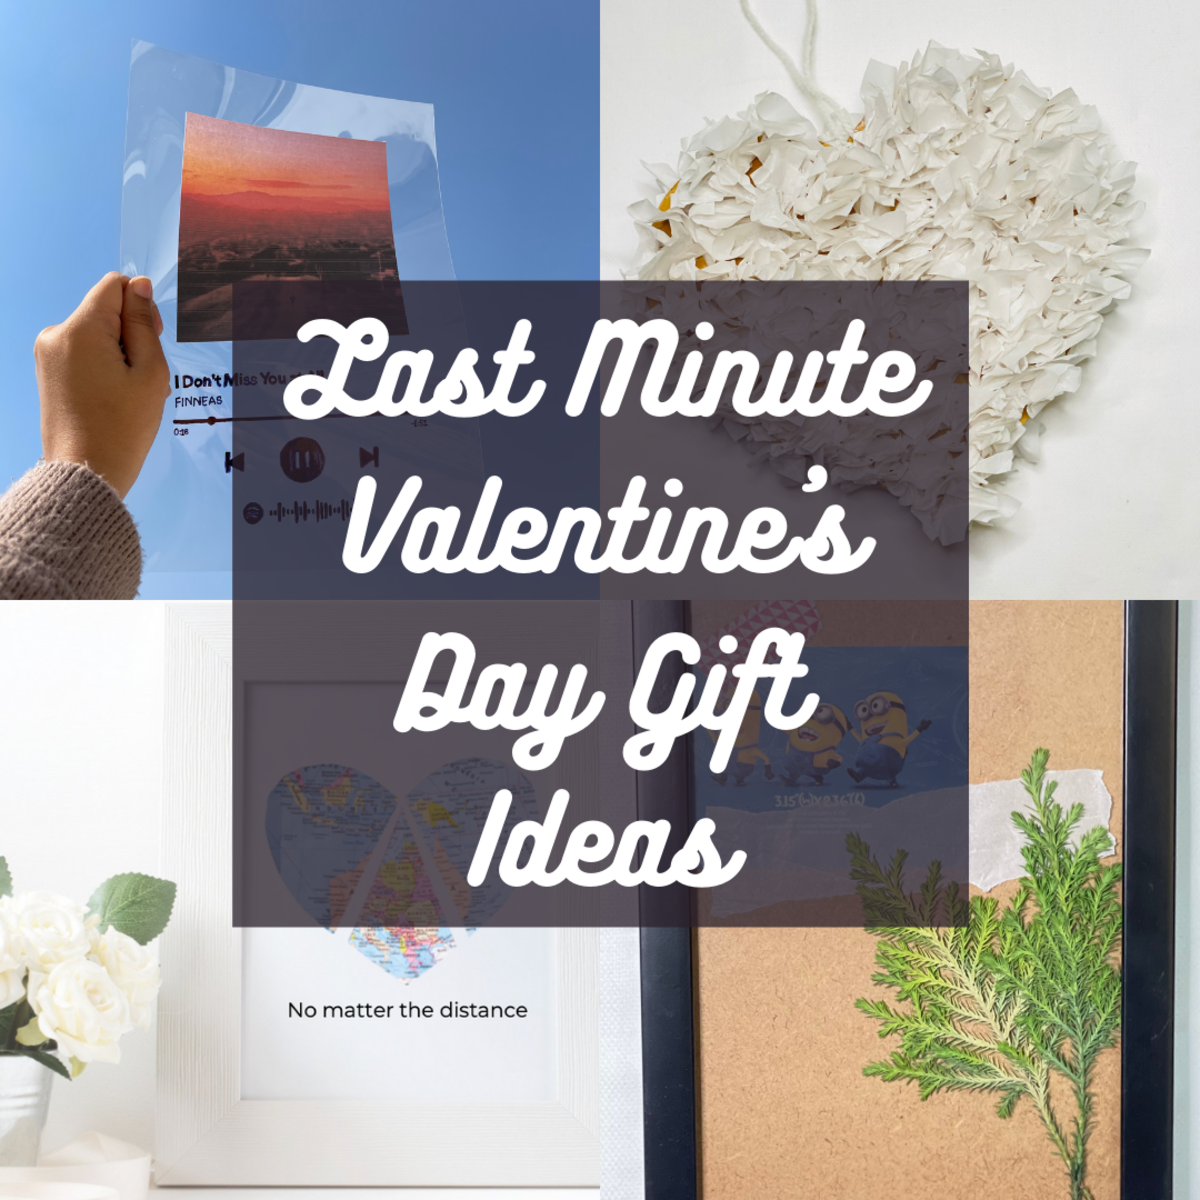 Just because time is running out doesn't mean you can't create a thoughtful gift for your partner.